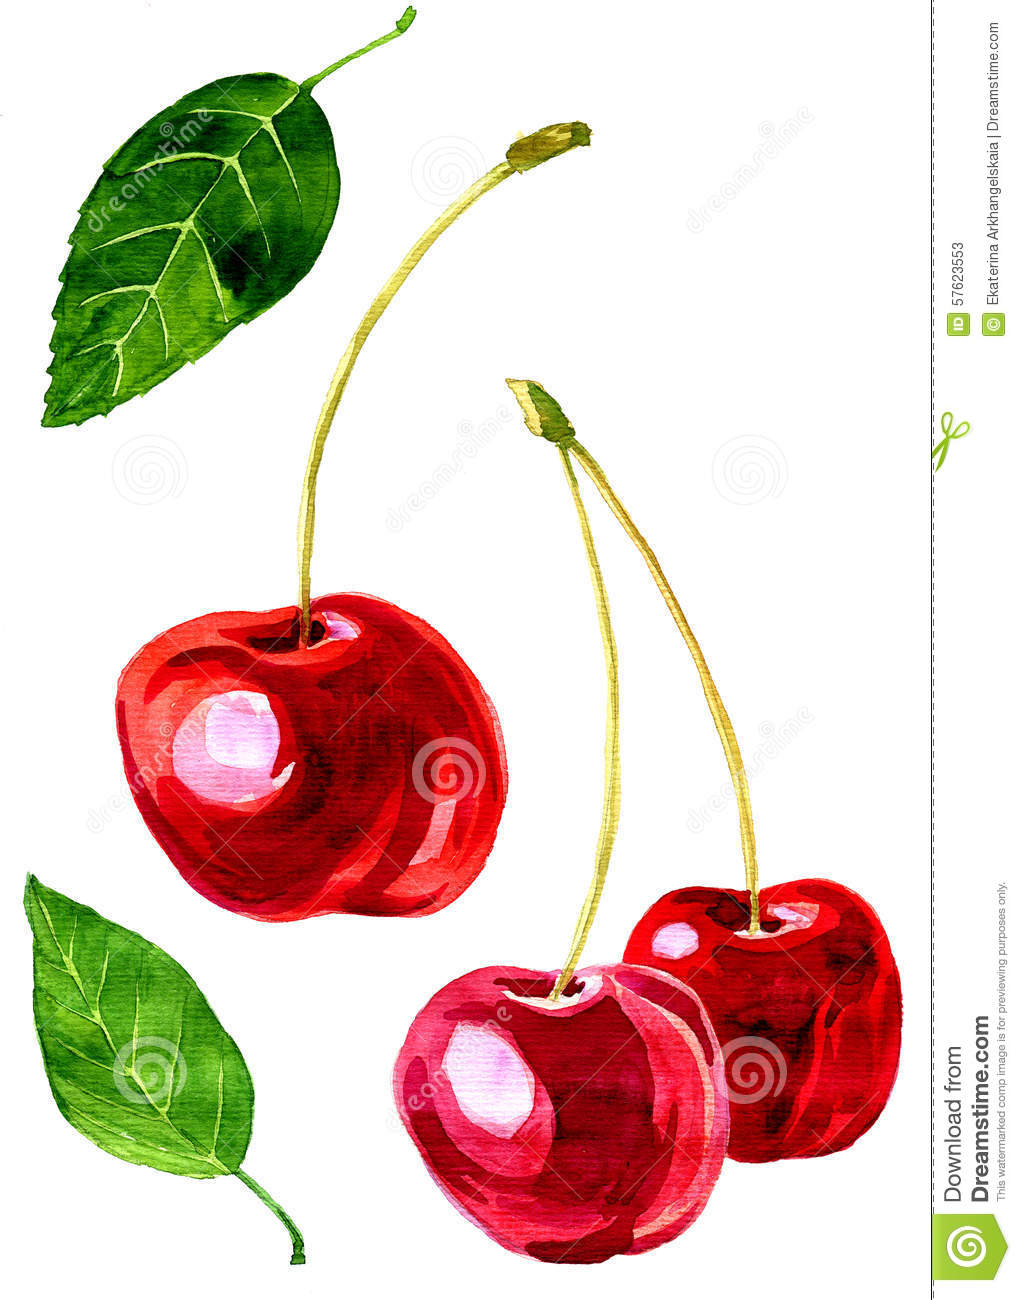 Cerise de dessin d 39 aquarelle illustration stock illustration du jardin manger 57623553 - Dessin cerise ...